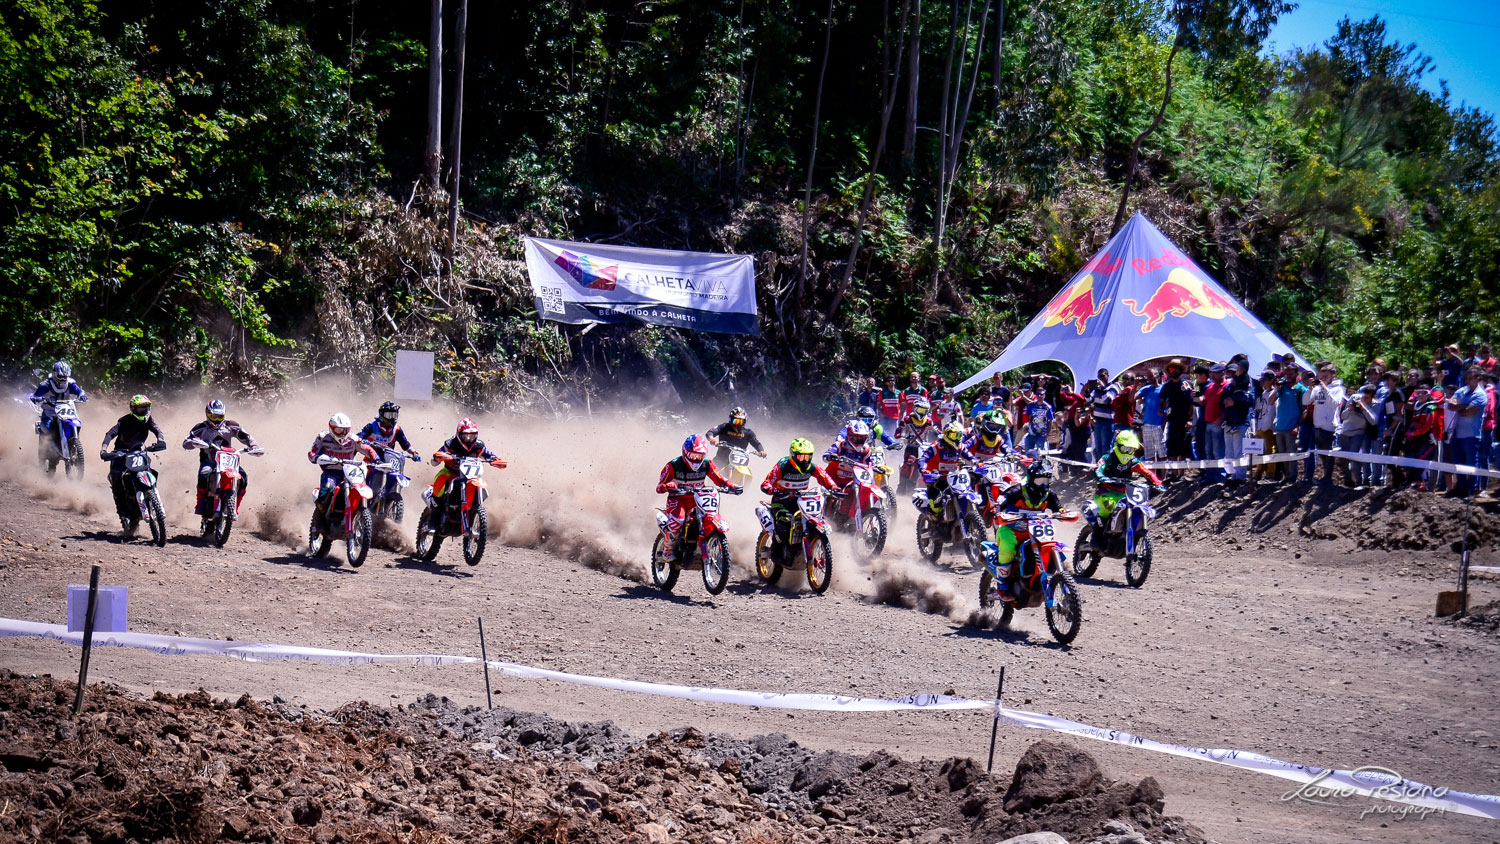 A Motocross Race Starting